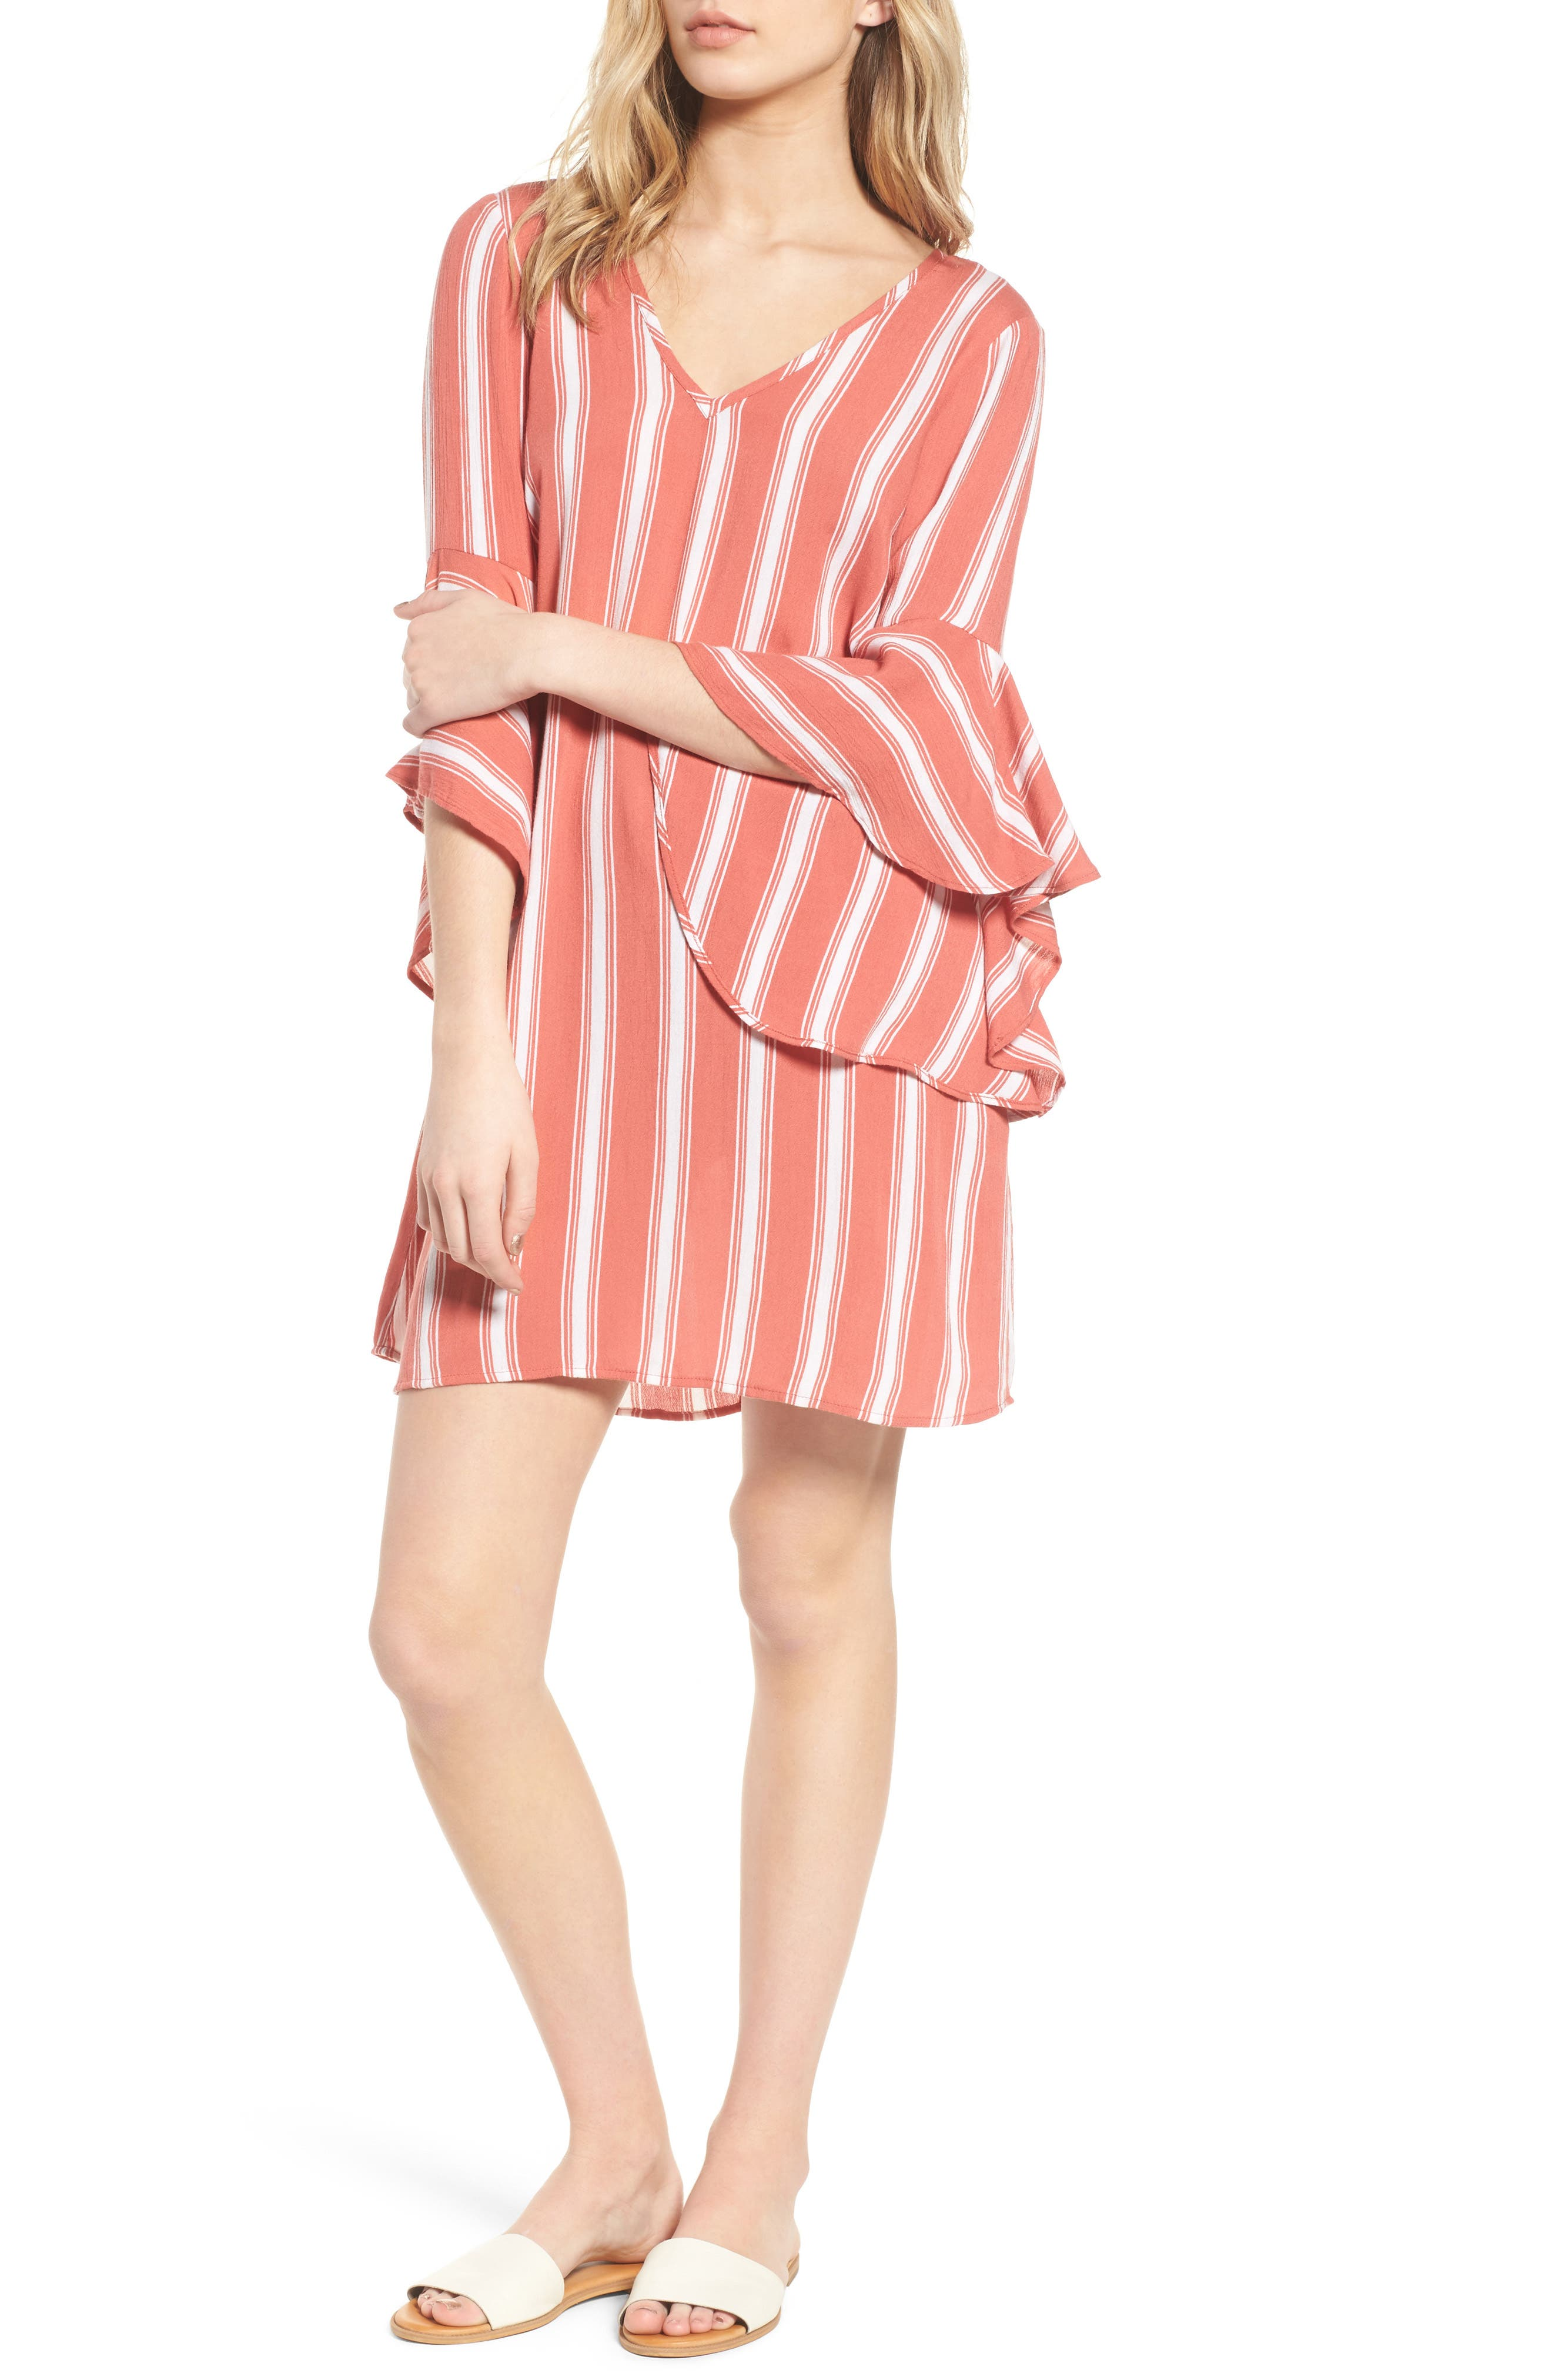 Ruffle Bell Sleeve Dress,                             Main thumbnail 1, color,                             Dusty Coral/ Ivory